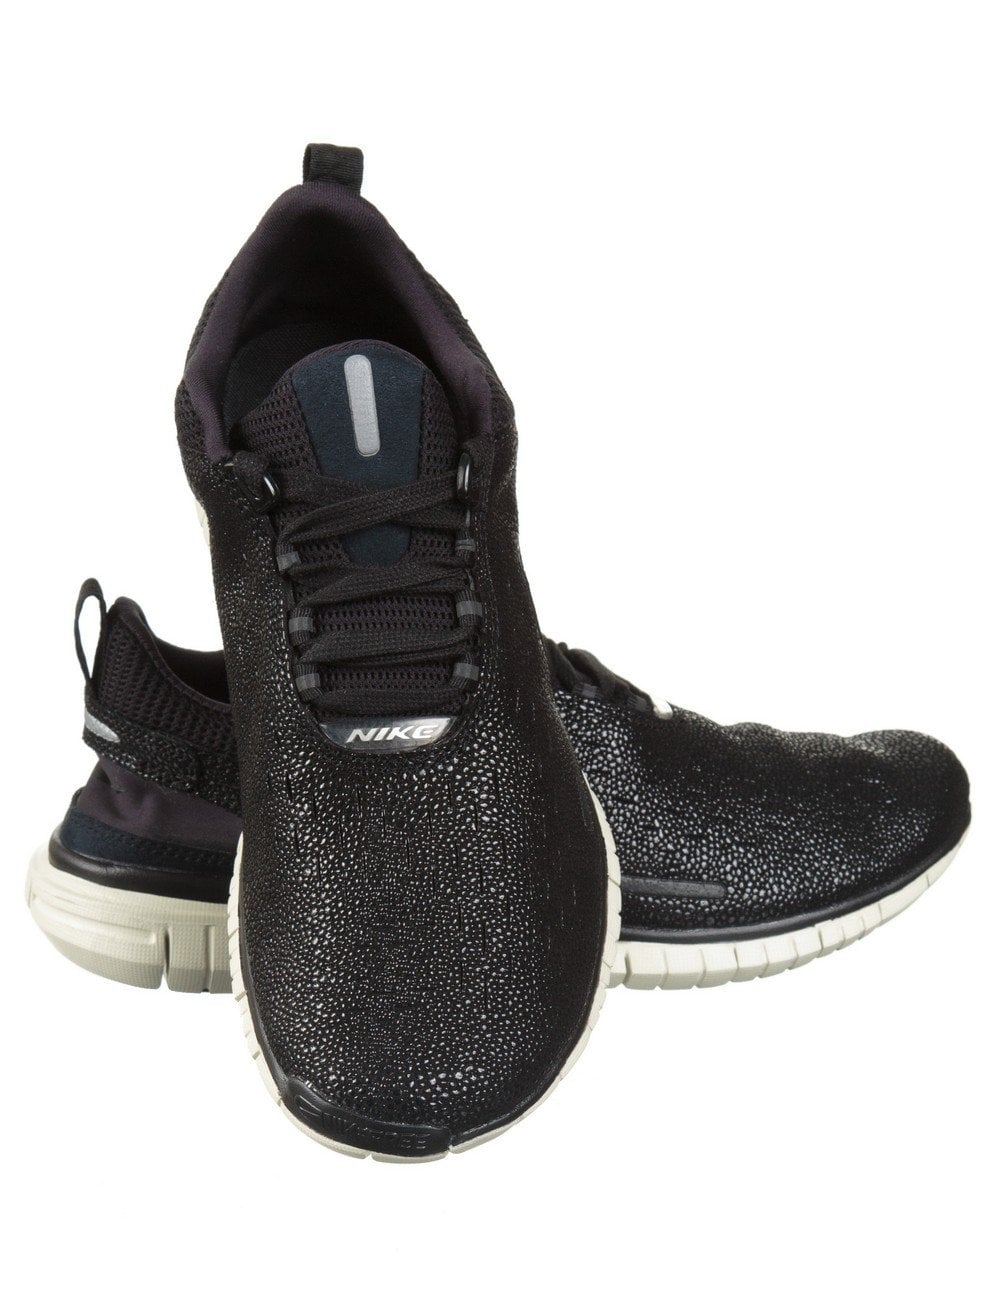 reputable site d6b08 9612f Free OG  039 14 PA Shoes - Black Seaglass (Stingray ...